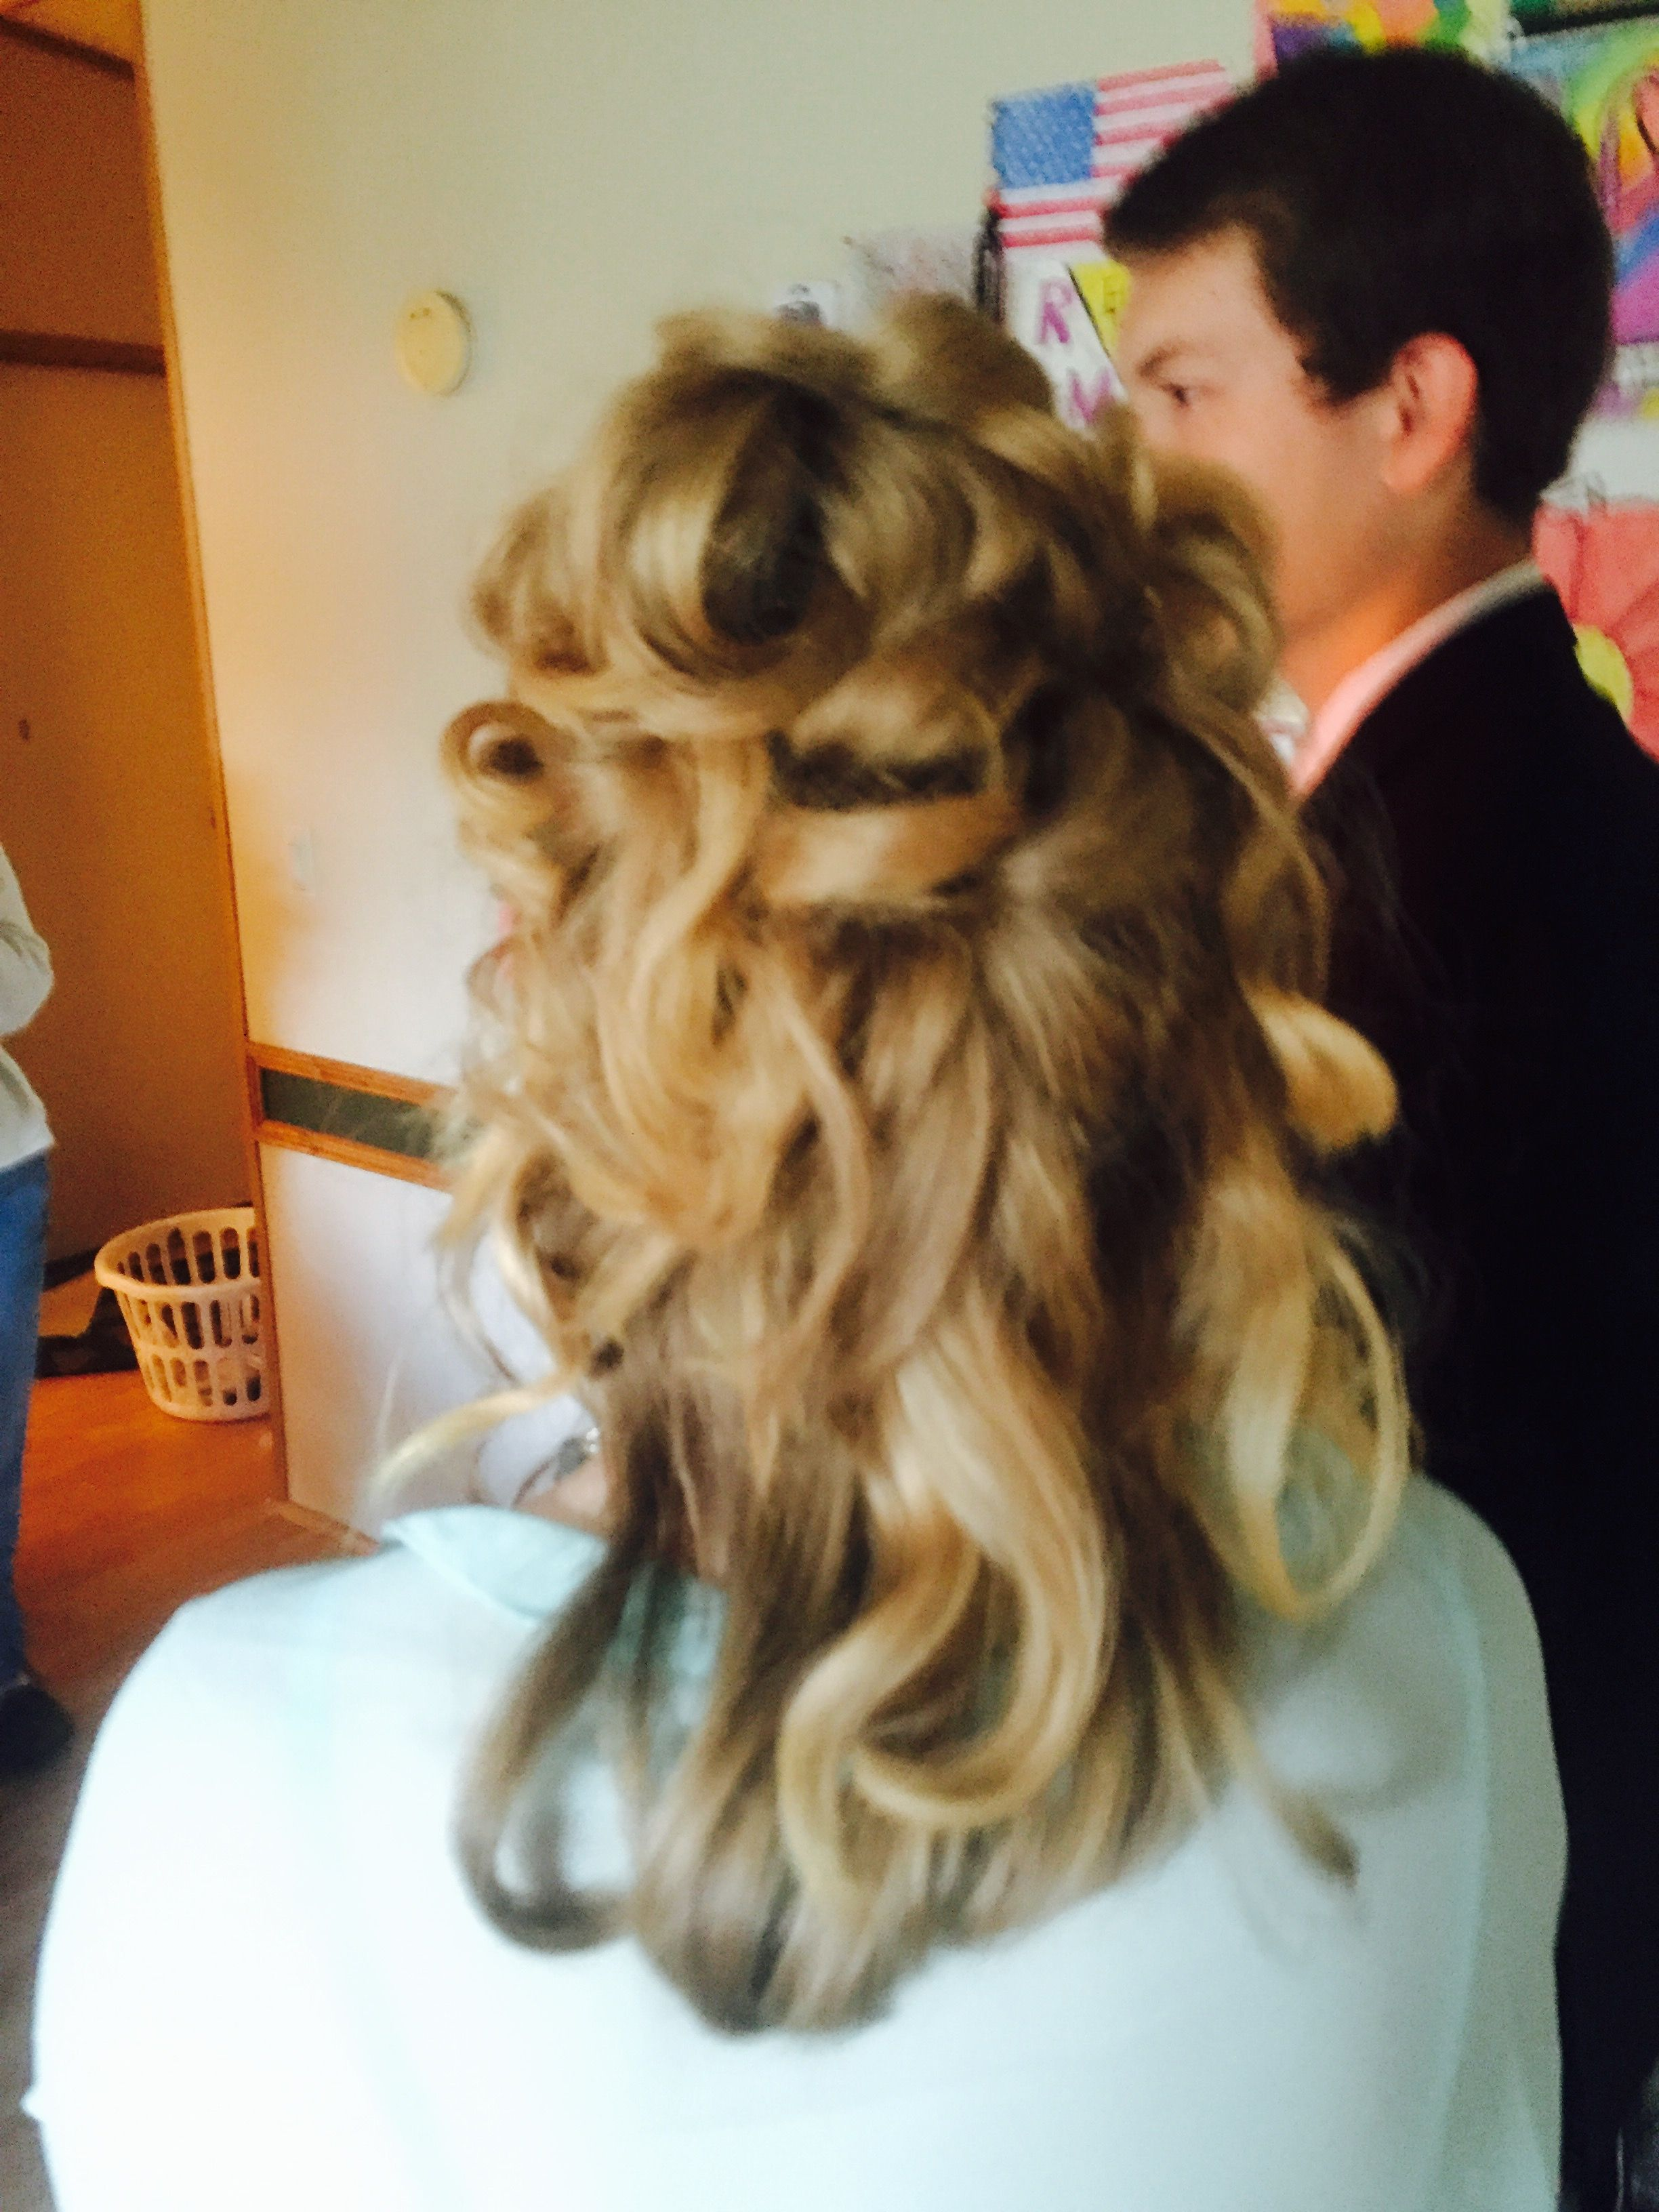 25 Bobby Pin Hairstyles You Havent Tried but Should | Glamour